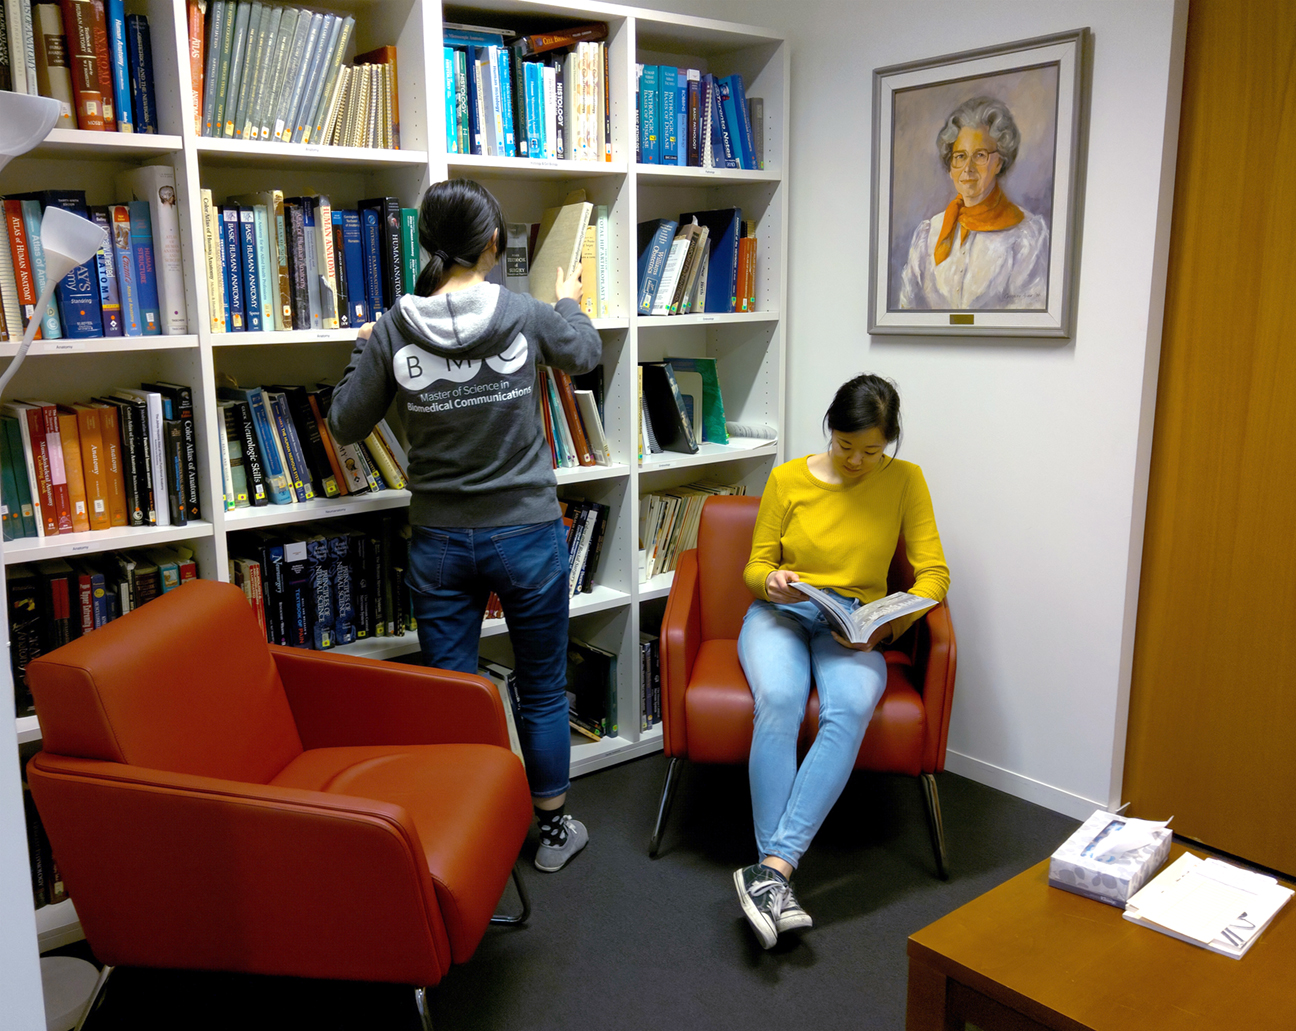 BMC students Amy Cao and Jenny Chin looking for reference material in the Elizabeth Blackstock Library.